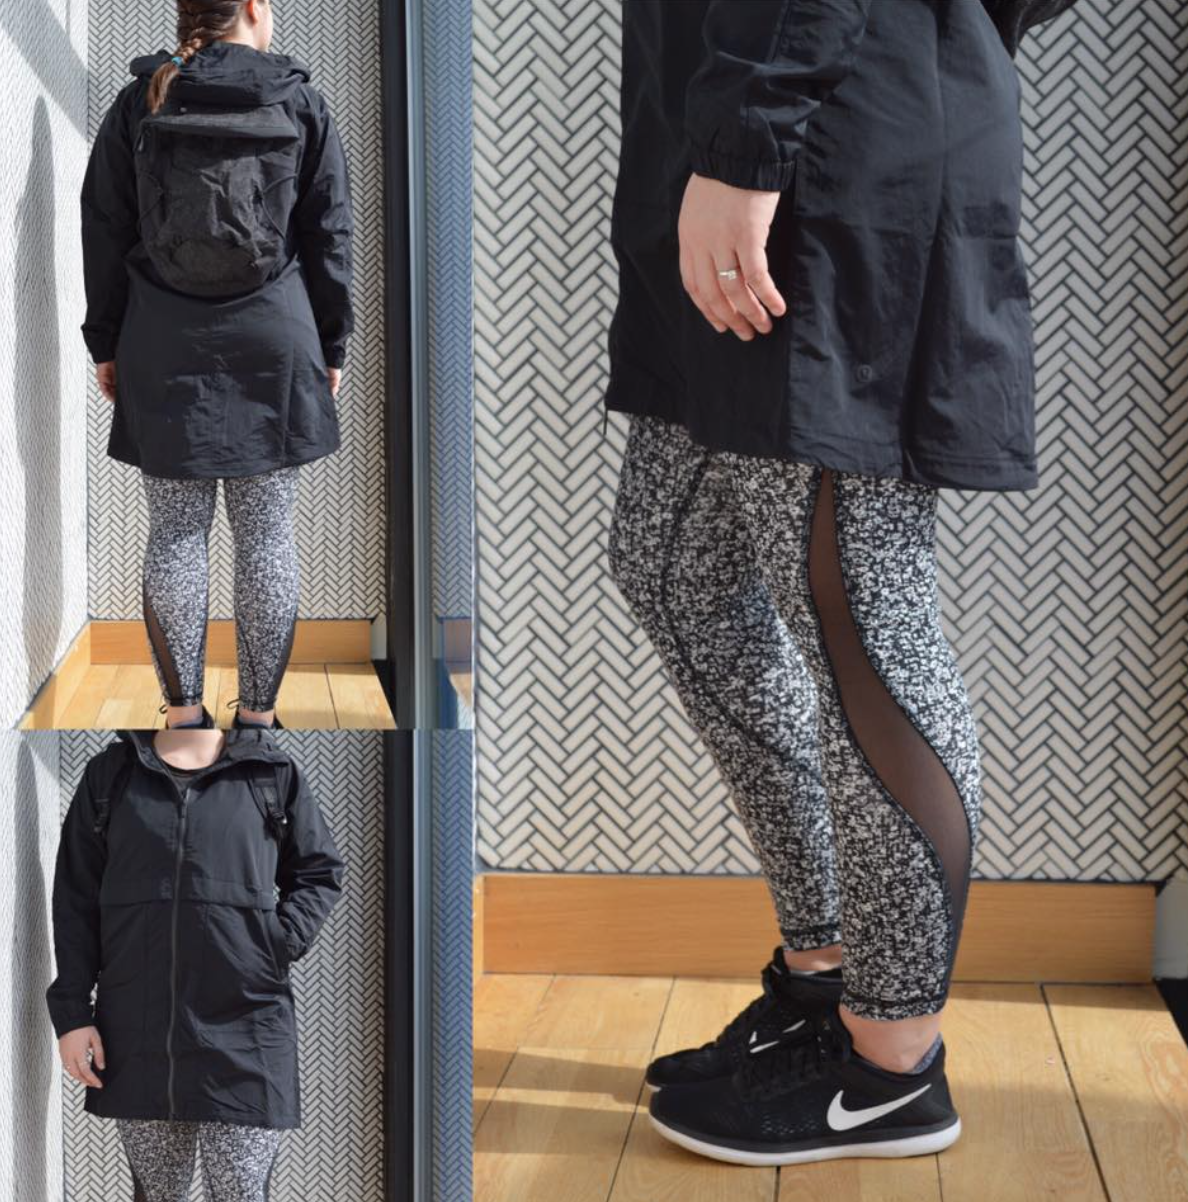 https://api.shopstyle.com/action/apiVisitRetailer?url=https%3A%2F%2Fshop.lululemon.com%2Fp%2Fwomens-outerwear%2FEasy-As-Jacket%2F_%2Fprod8431356%3Frcnt%3D4%26N%3D1z13ziiZ7z5%26cnt%3D65%26color%3DLW4AEXS_026083&site=www.shopstyle.ca&pid=uid6784-25288972-7